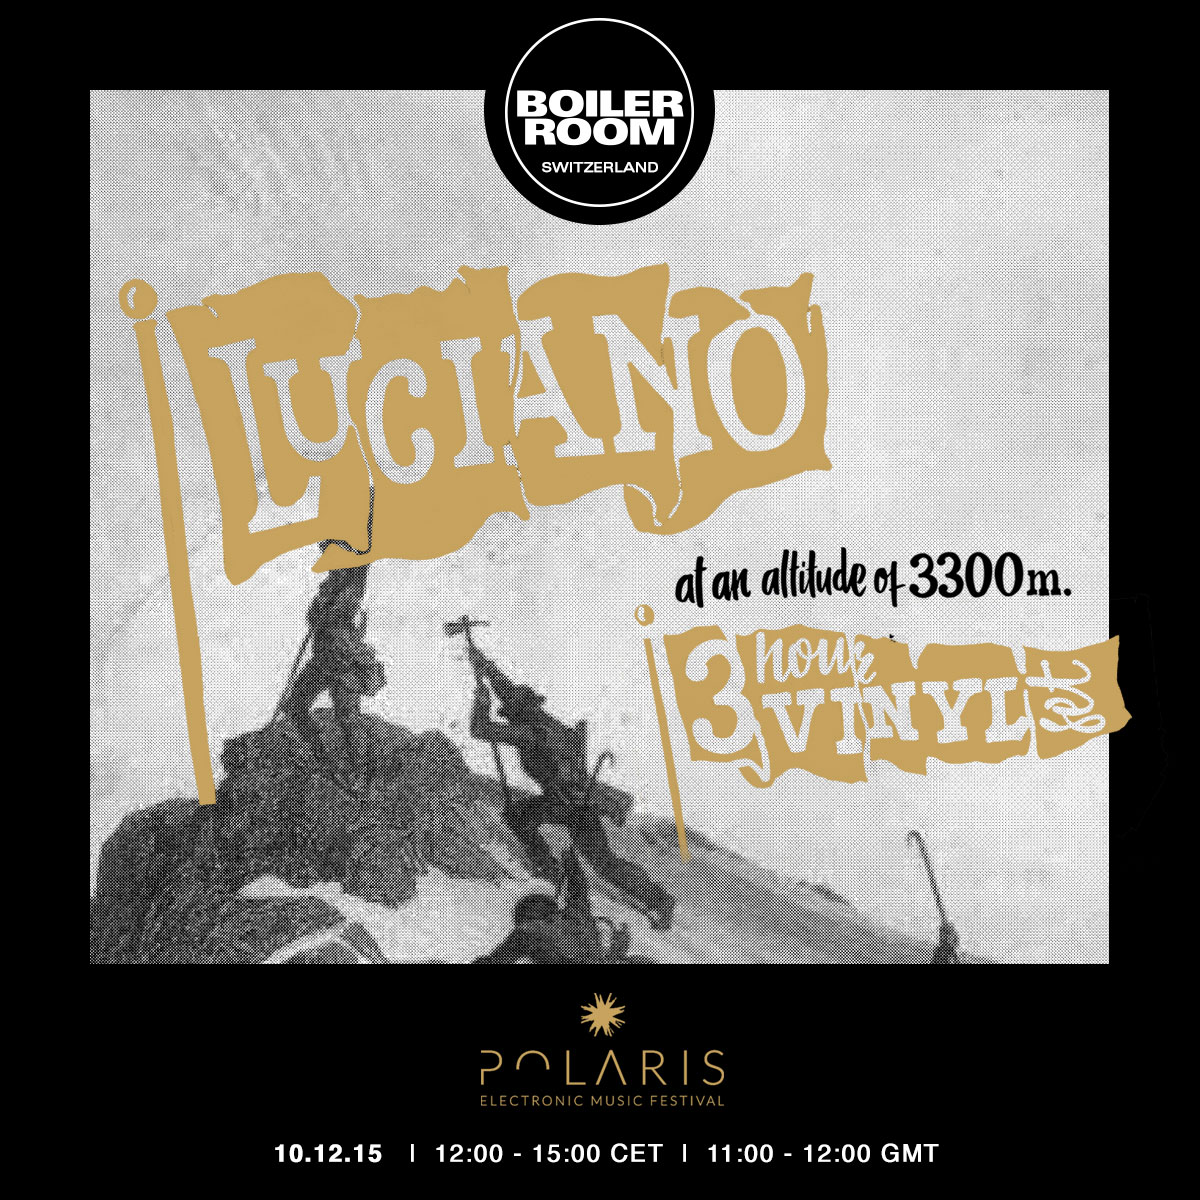 download → Luciano - live at Boiler Room Switzerland (Vinyl Set at 3300m Altitude) - 10-Dec-2015